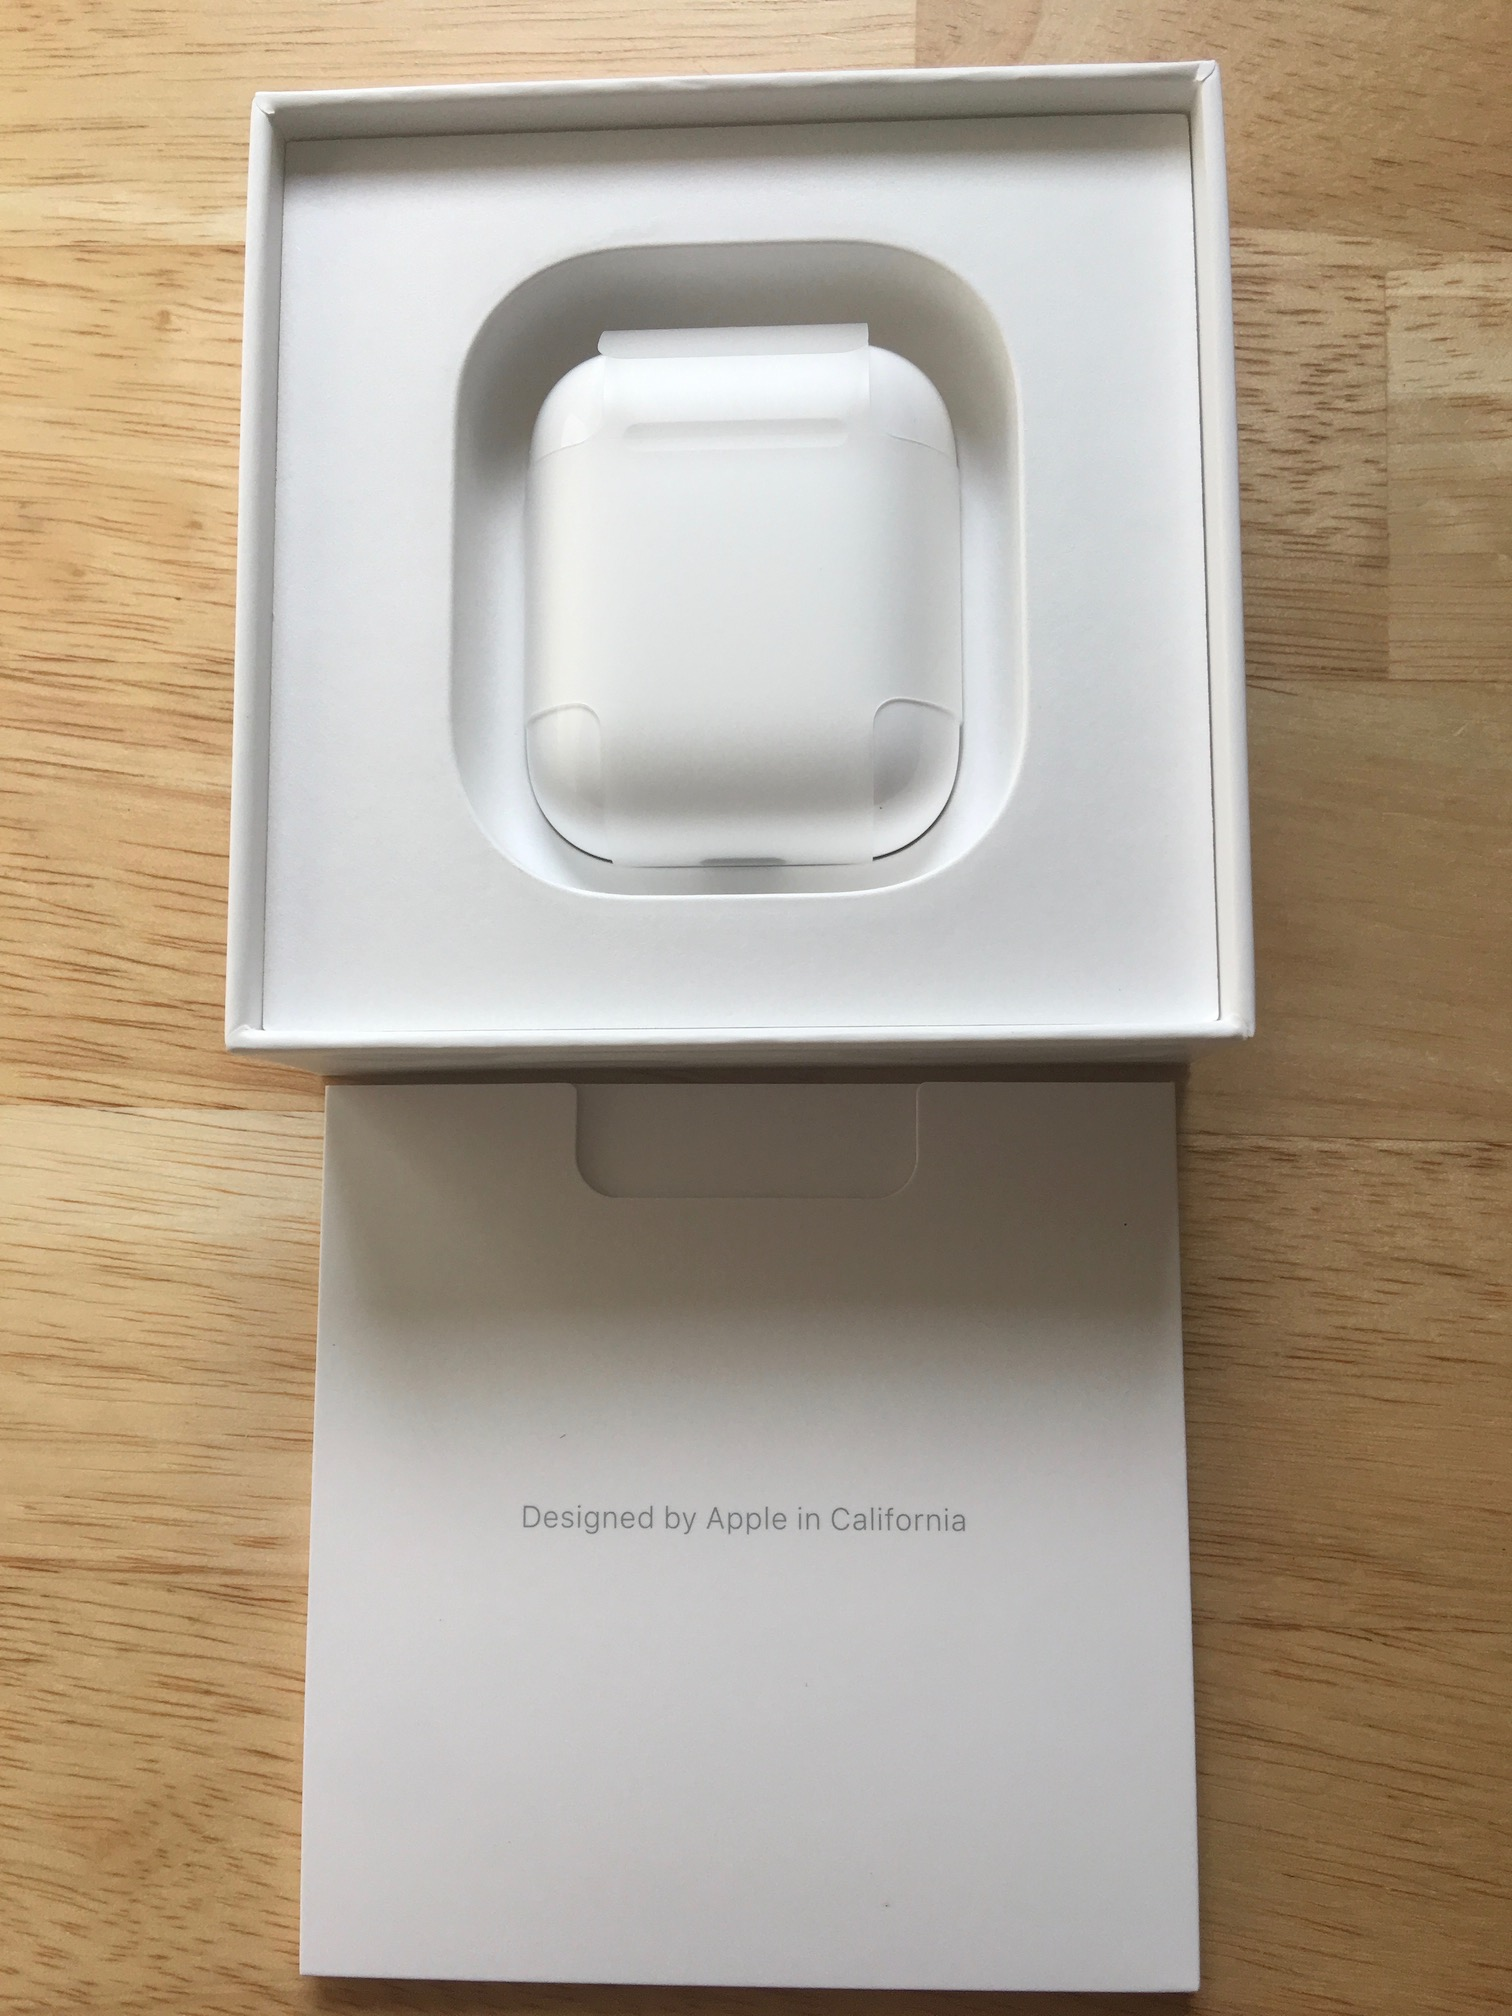 Airpods Unboxing 8 February 2017